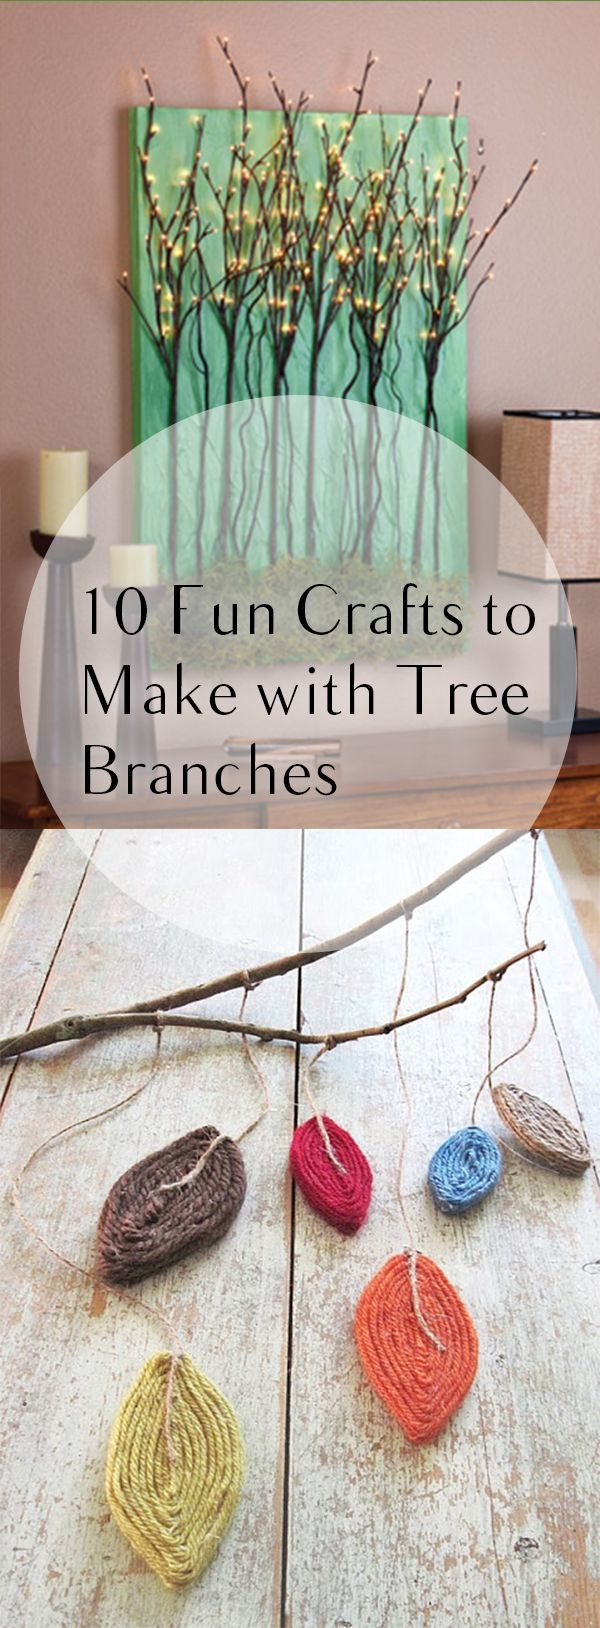 Tree branches for crafts - 10 Fun Crafts To Make With Tree Branches